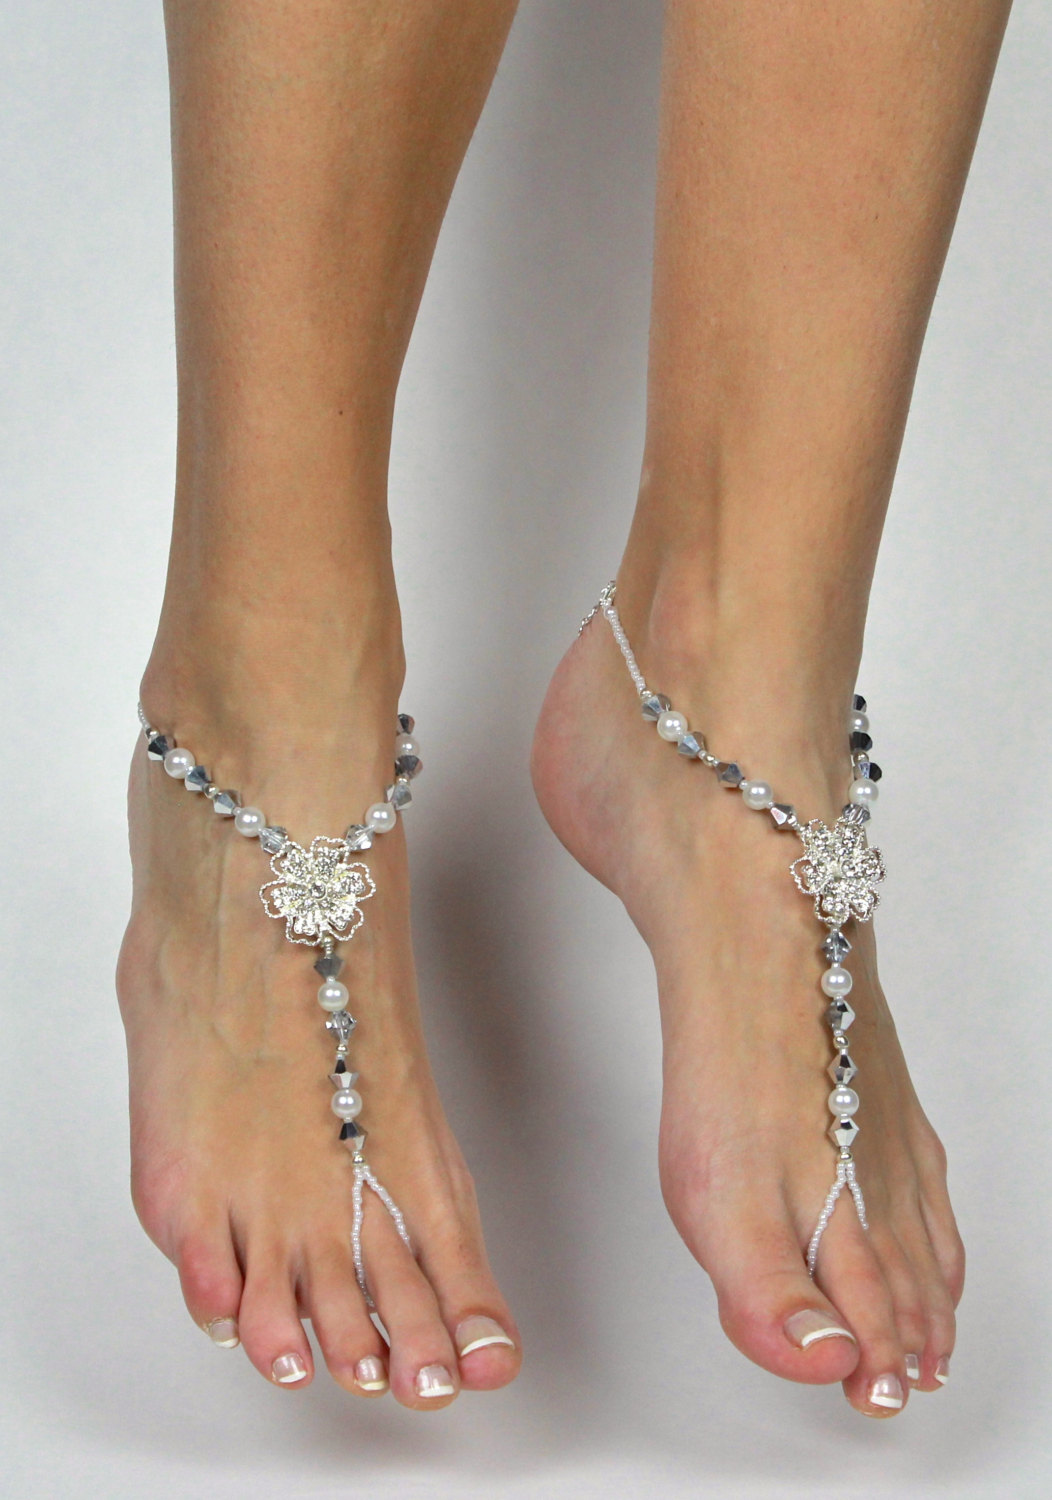 Rhinestone Flower Silver And White Barefoot Sandals Foot